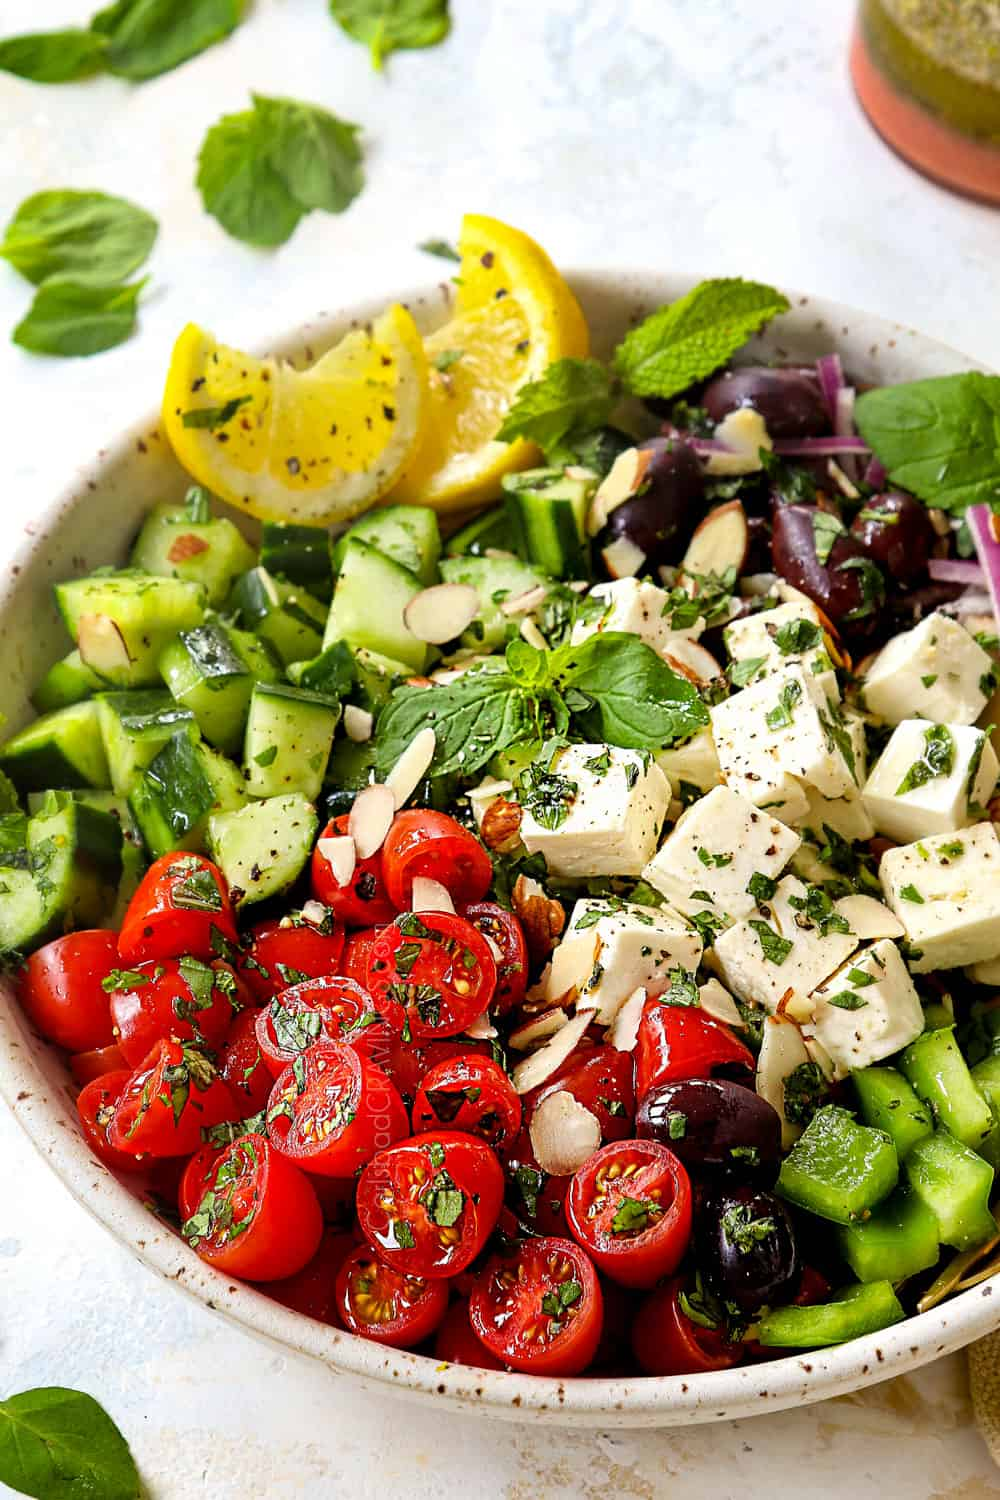 showing how to make Greek Salad by adding Greek Salad ingredients to a bowl: tomatoes, bell peppers, feta, cucumbers, red onions and Kalamata olives